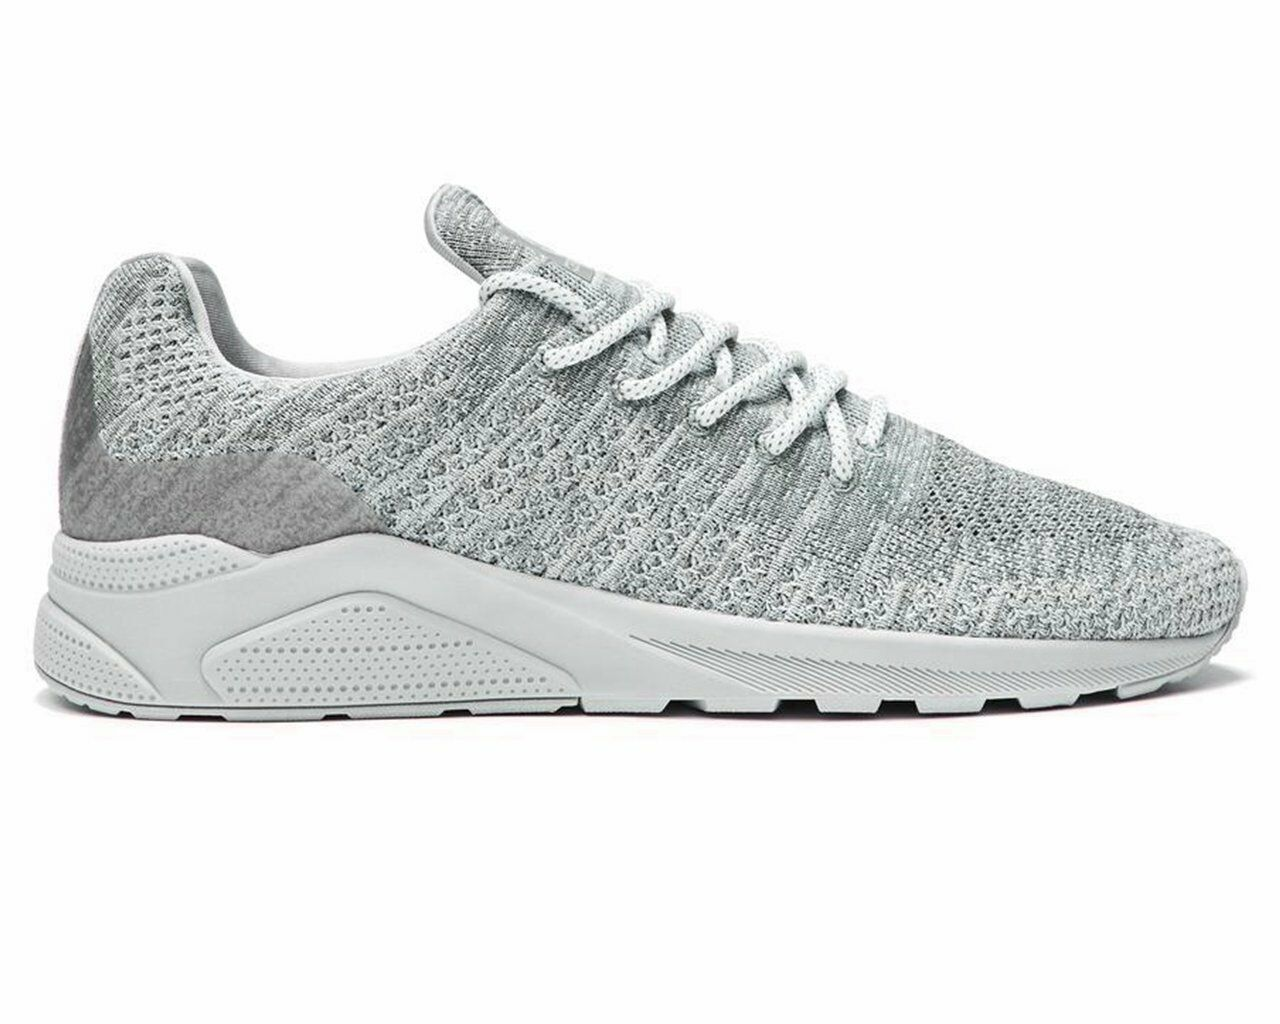 Certified London CT 550 Runner L7FY0045 Trainers Light Grey